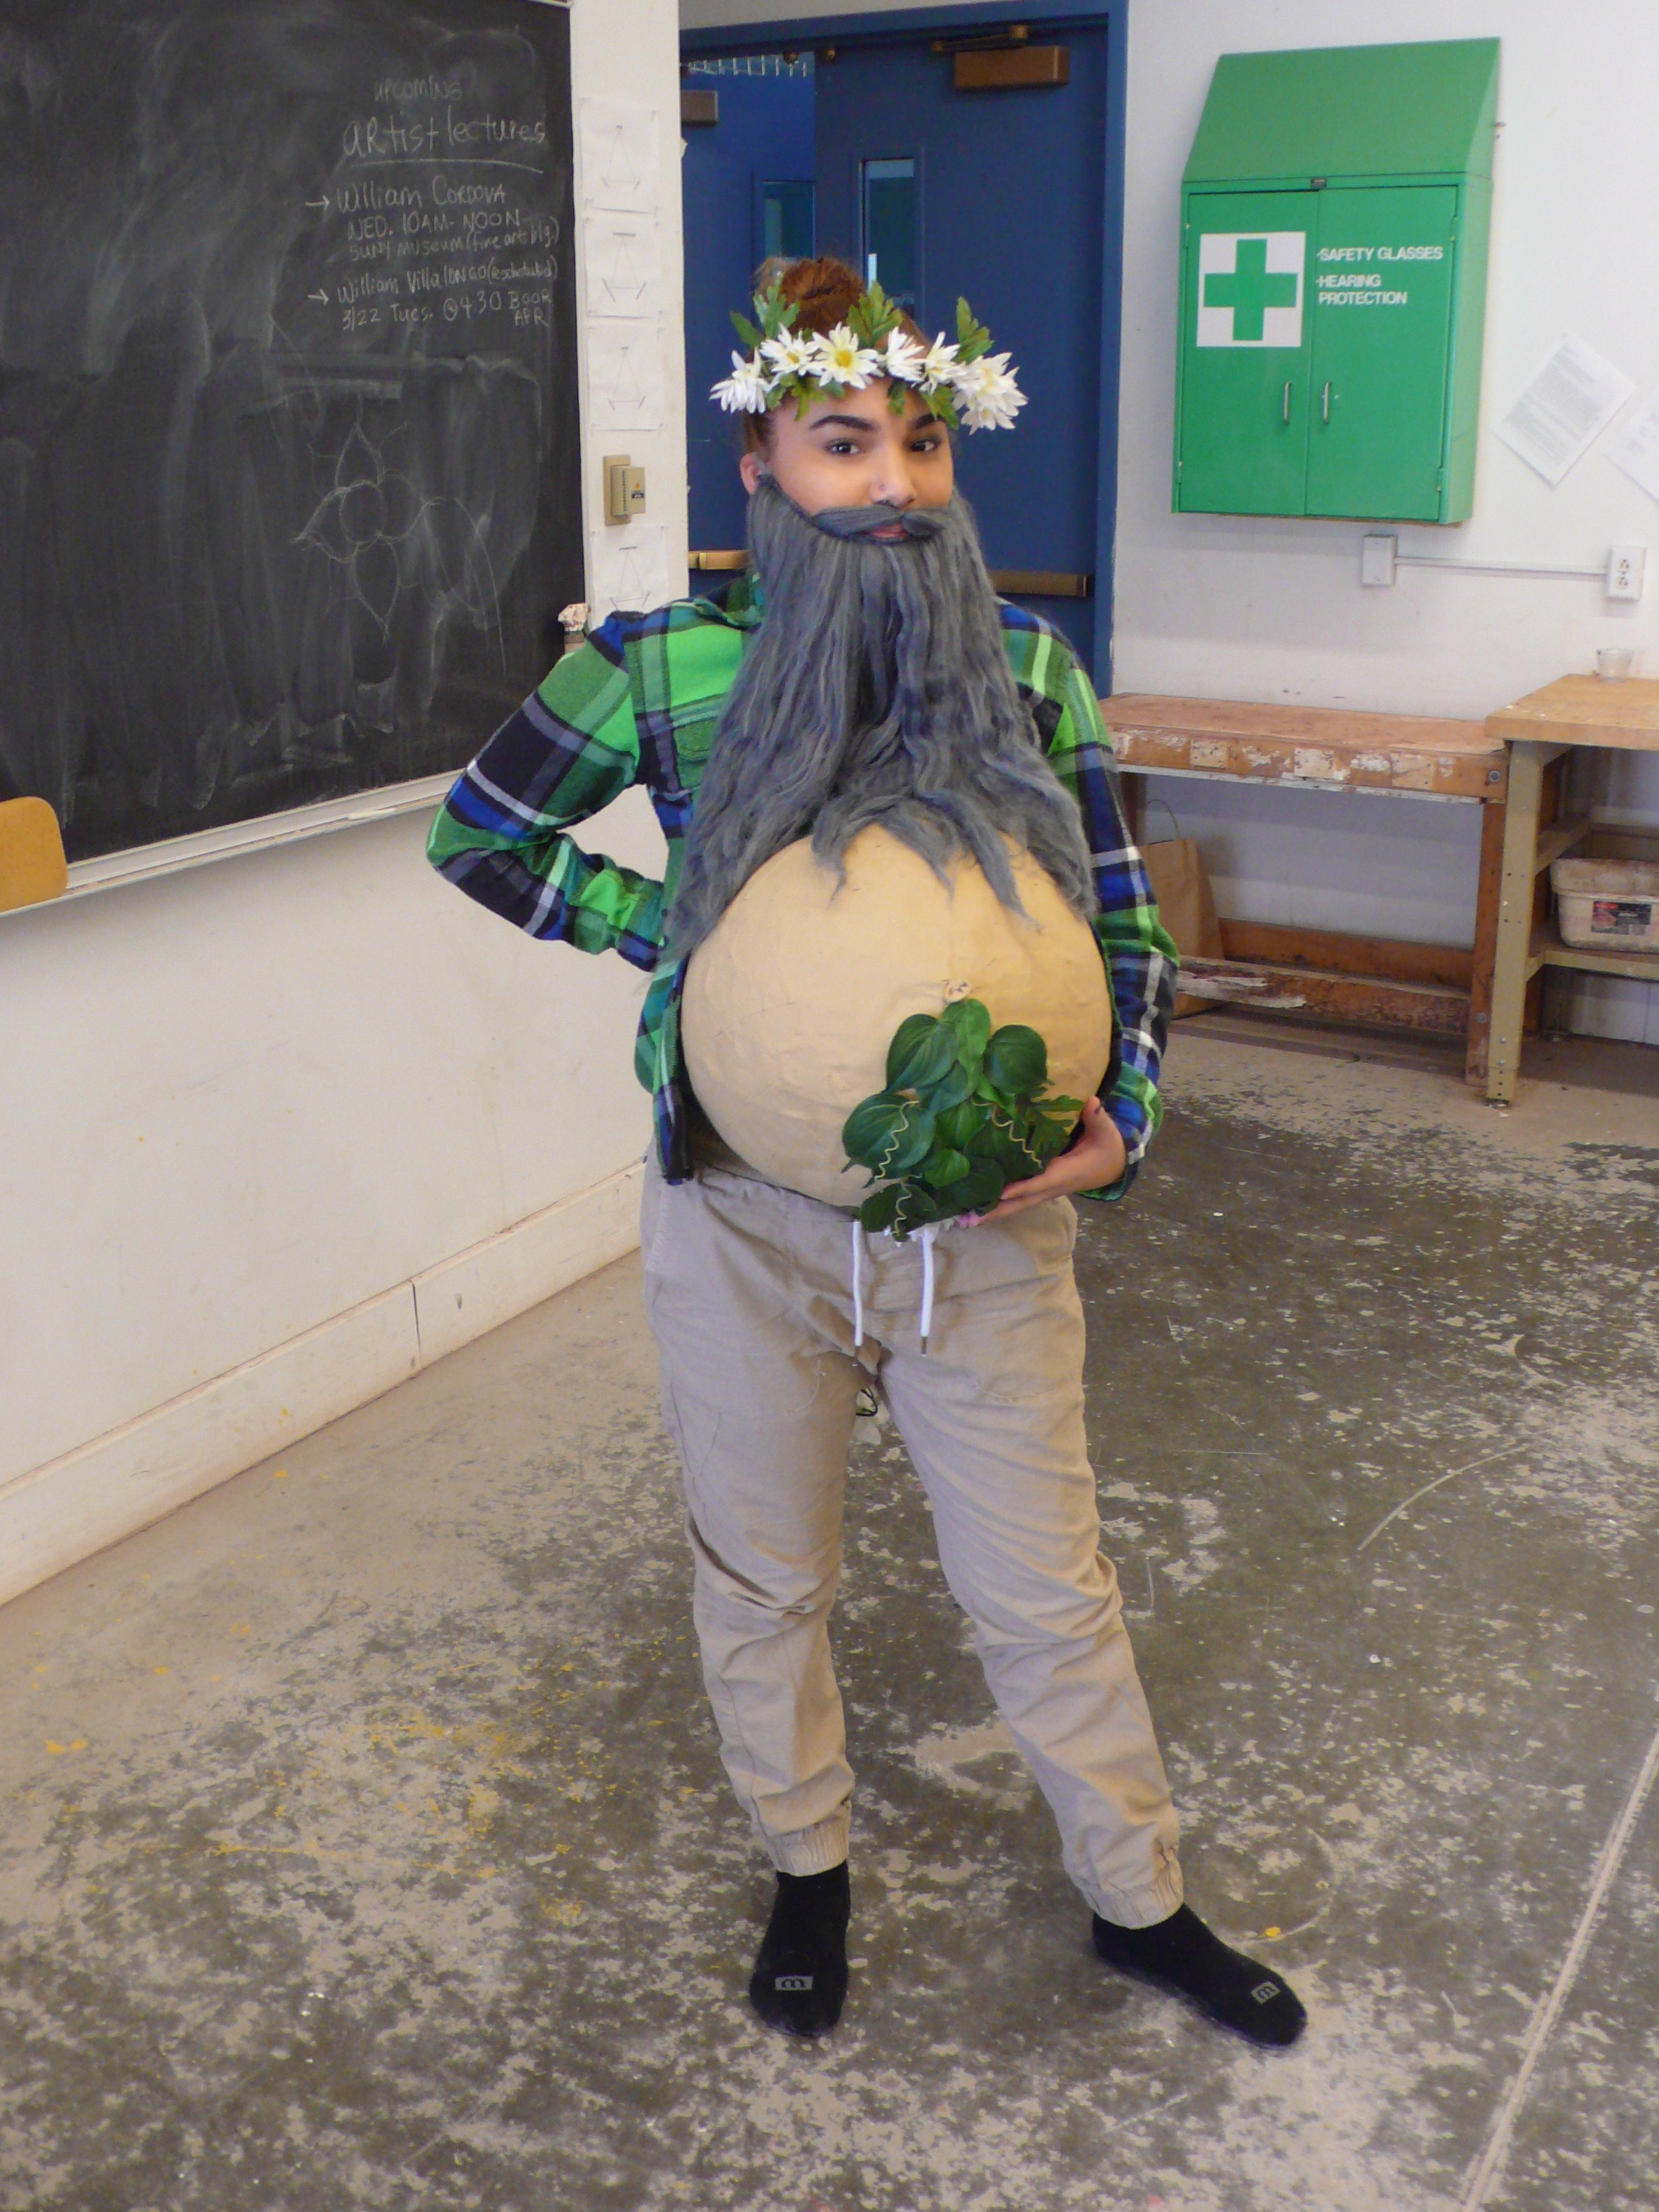 THE PURPOSEFUL COSTUME, 2015